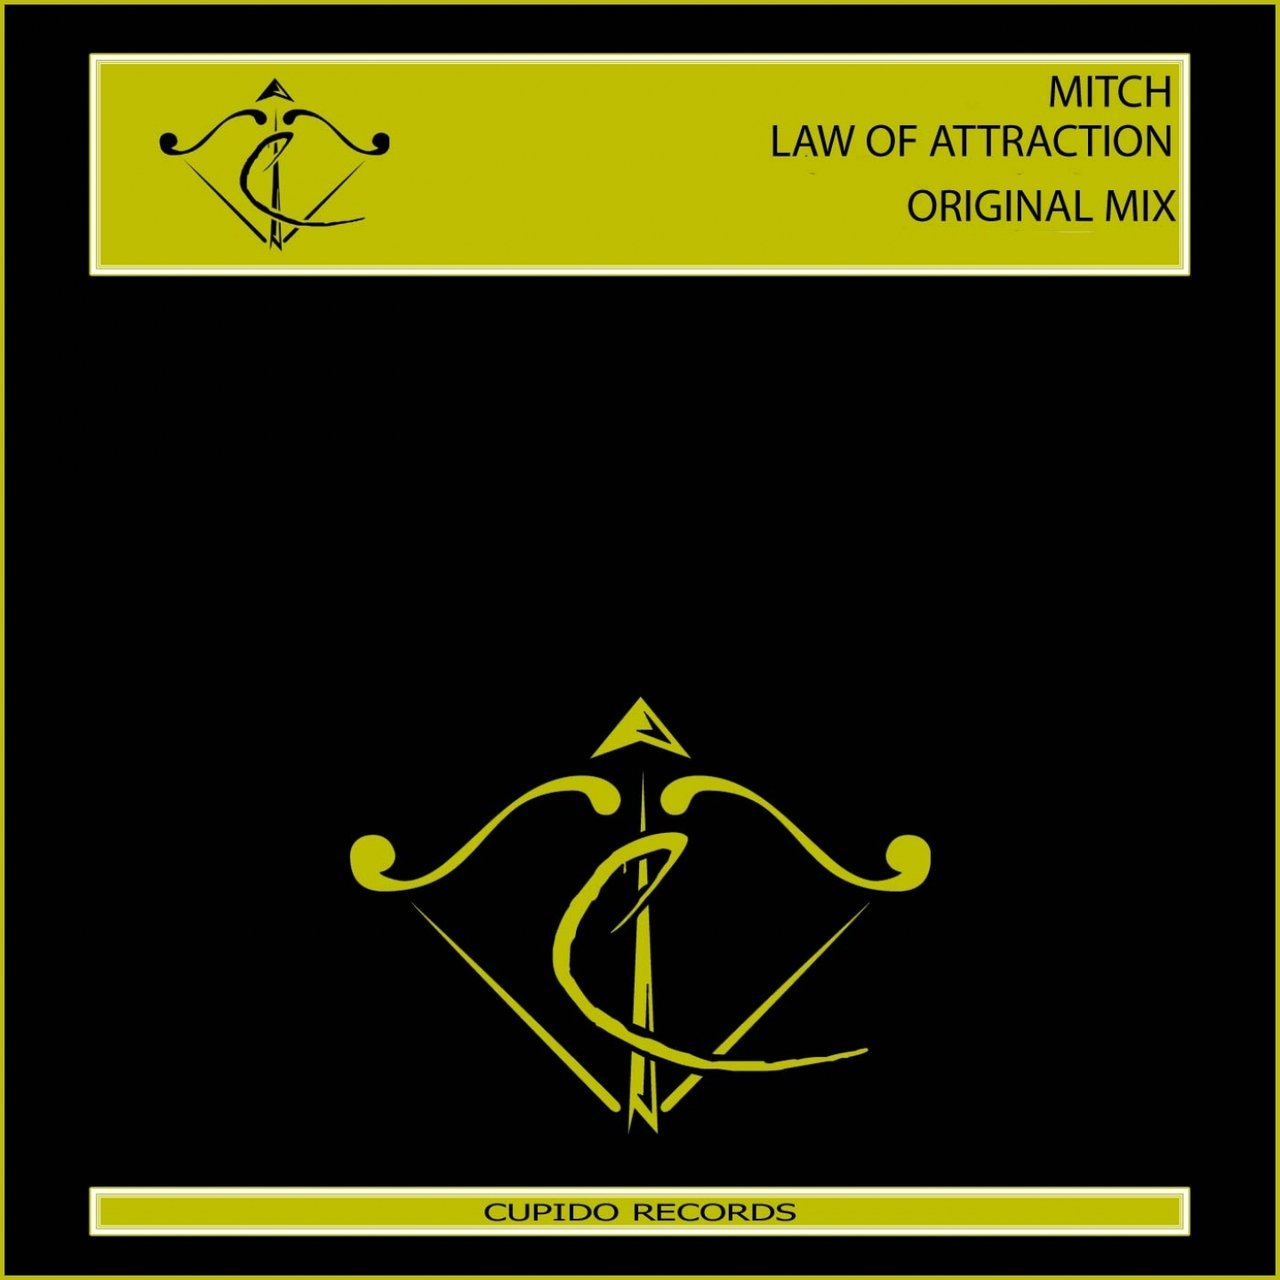 Tidal listen to mitch on tidal law of attraction biocorpaavc